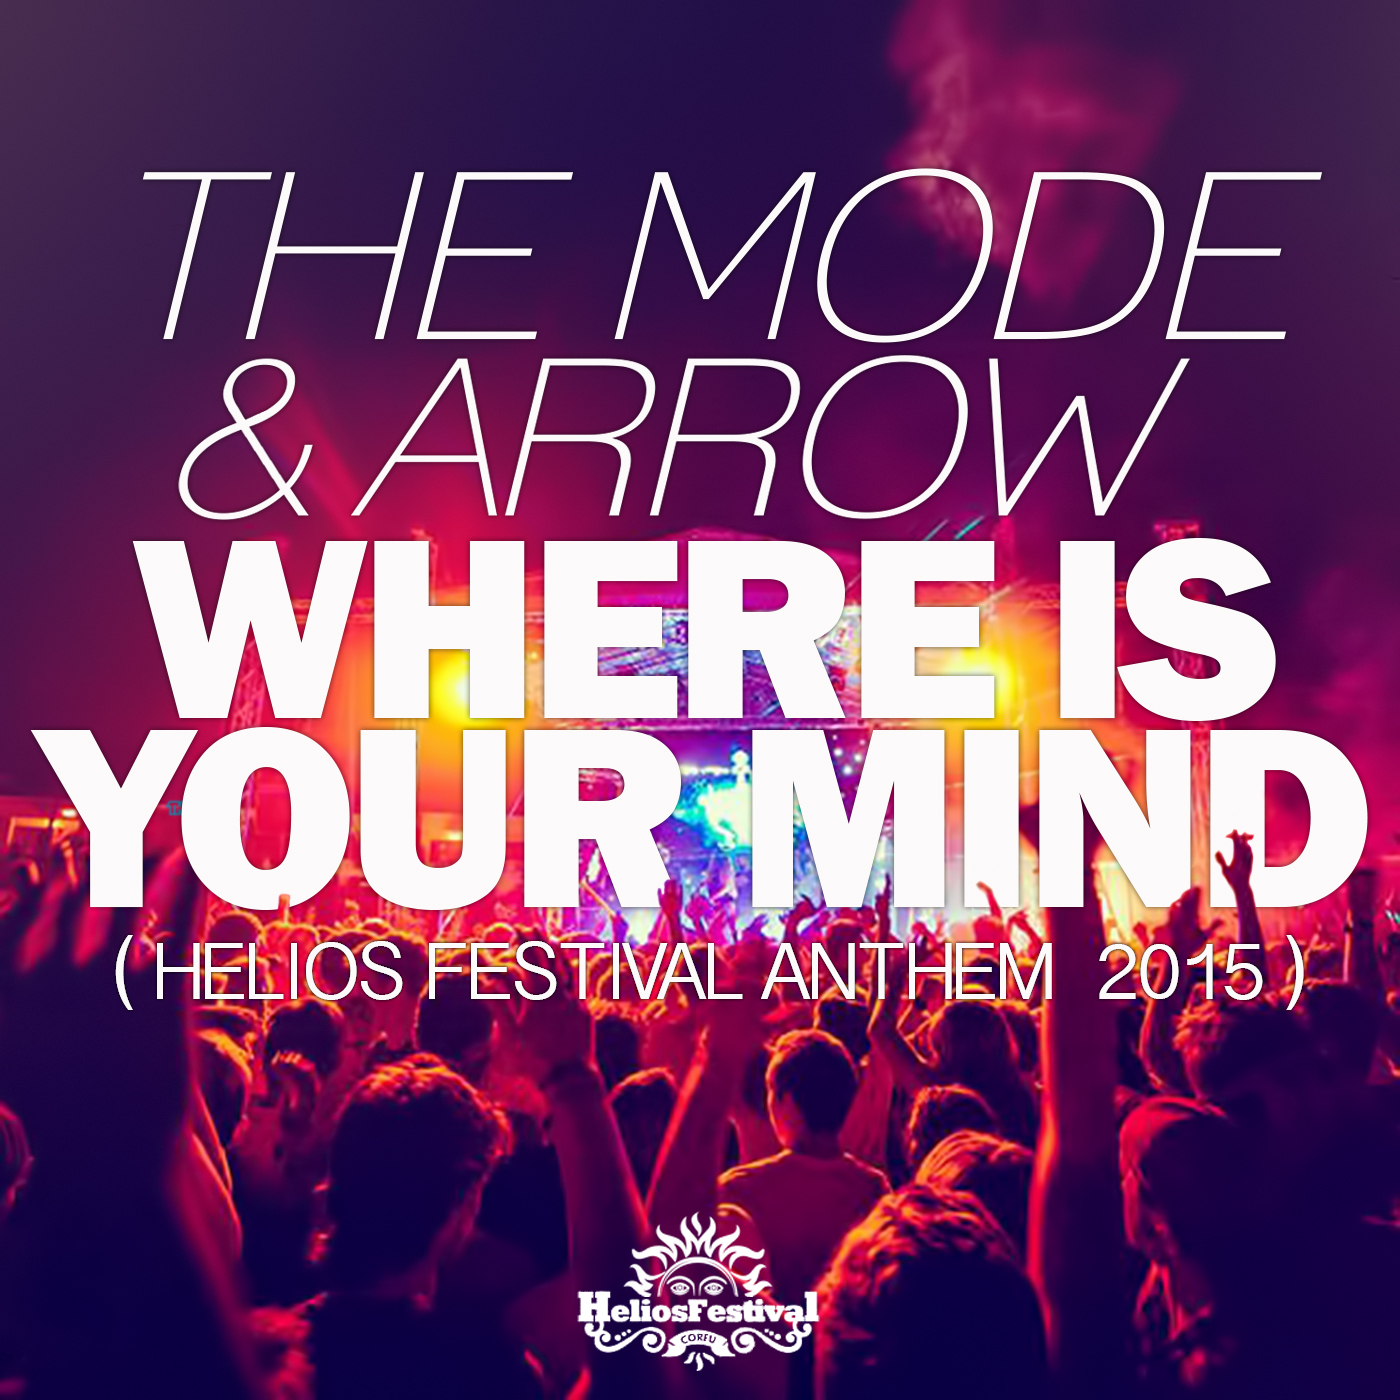 The-Mode-Arrow-Where-Is-Your-Mind-Helios-Festival-Anthem-2015-cover